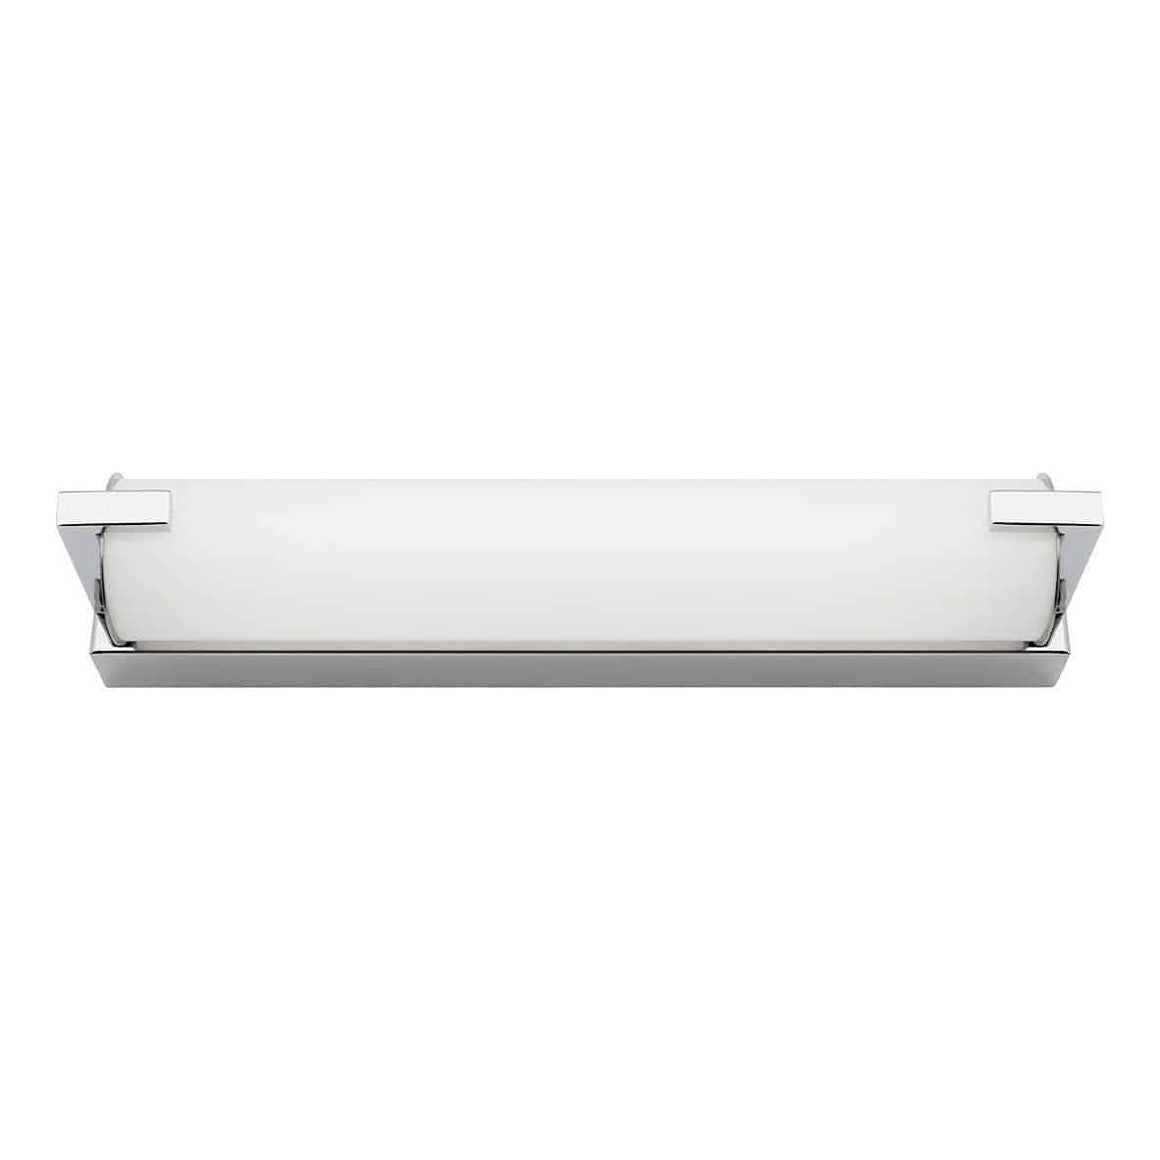 SETH 15W LED VANITY LIGHT